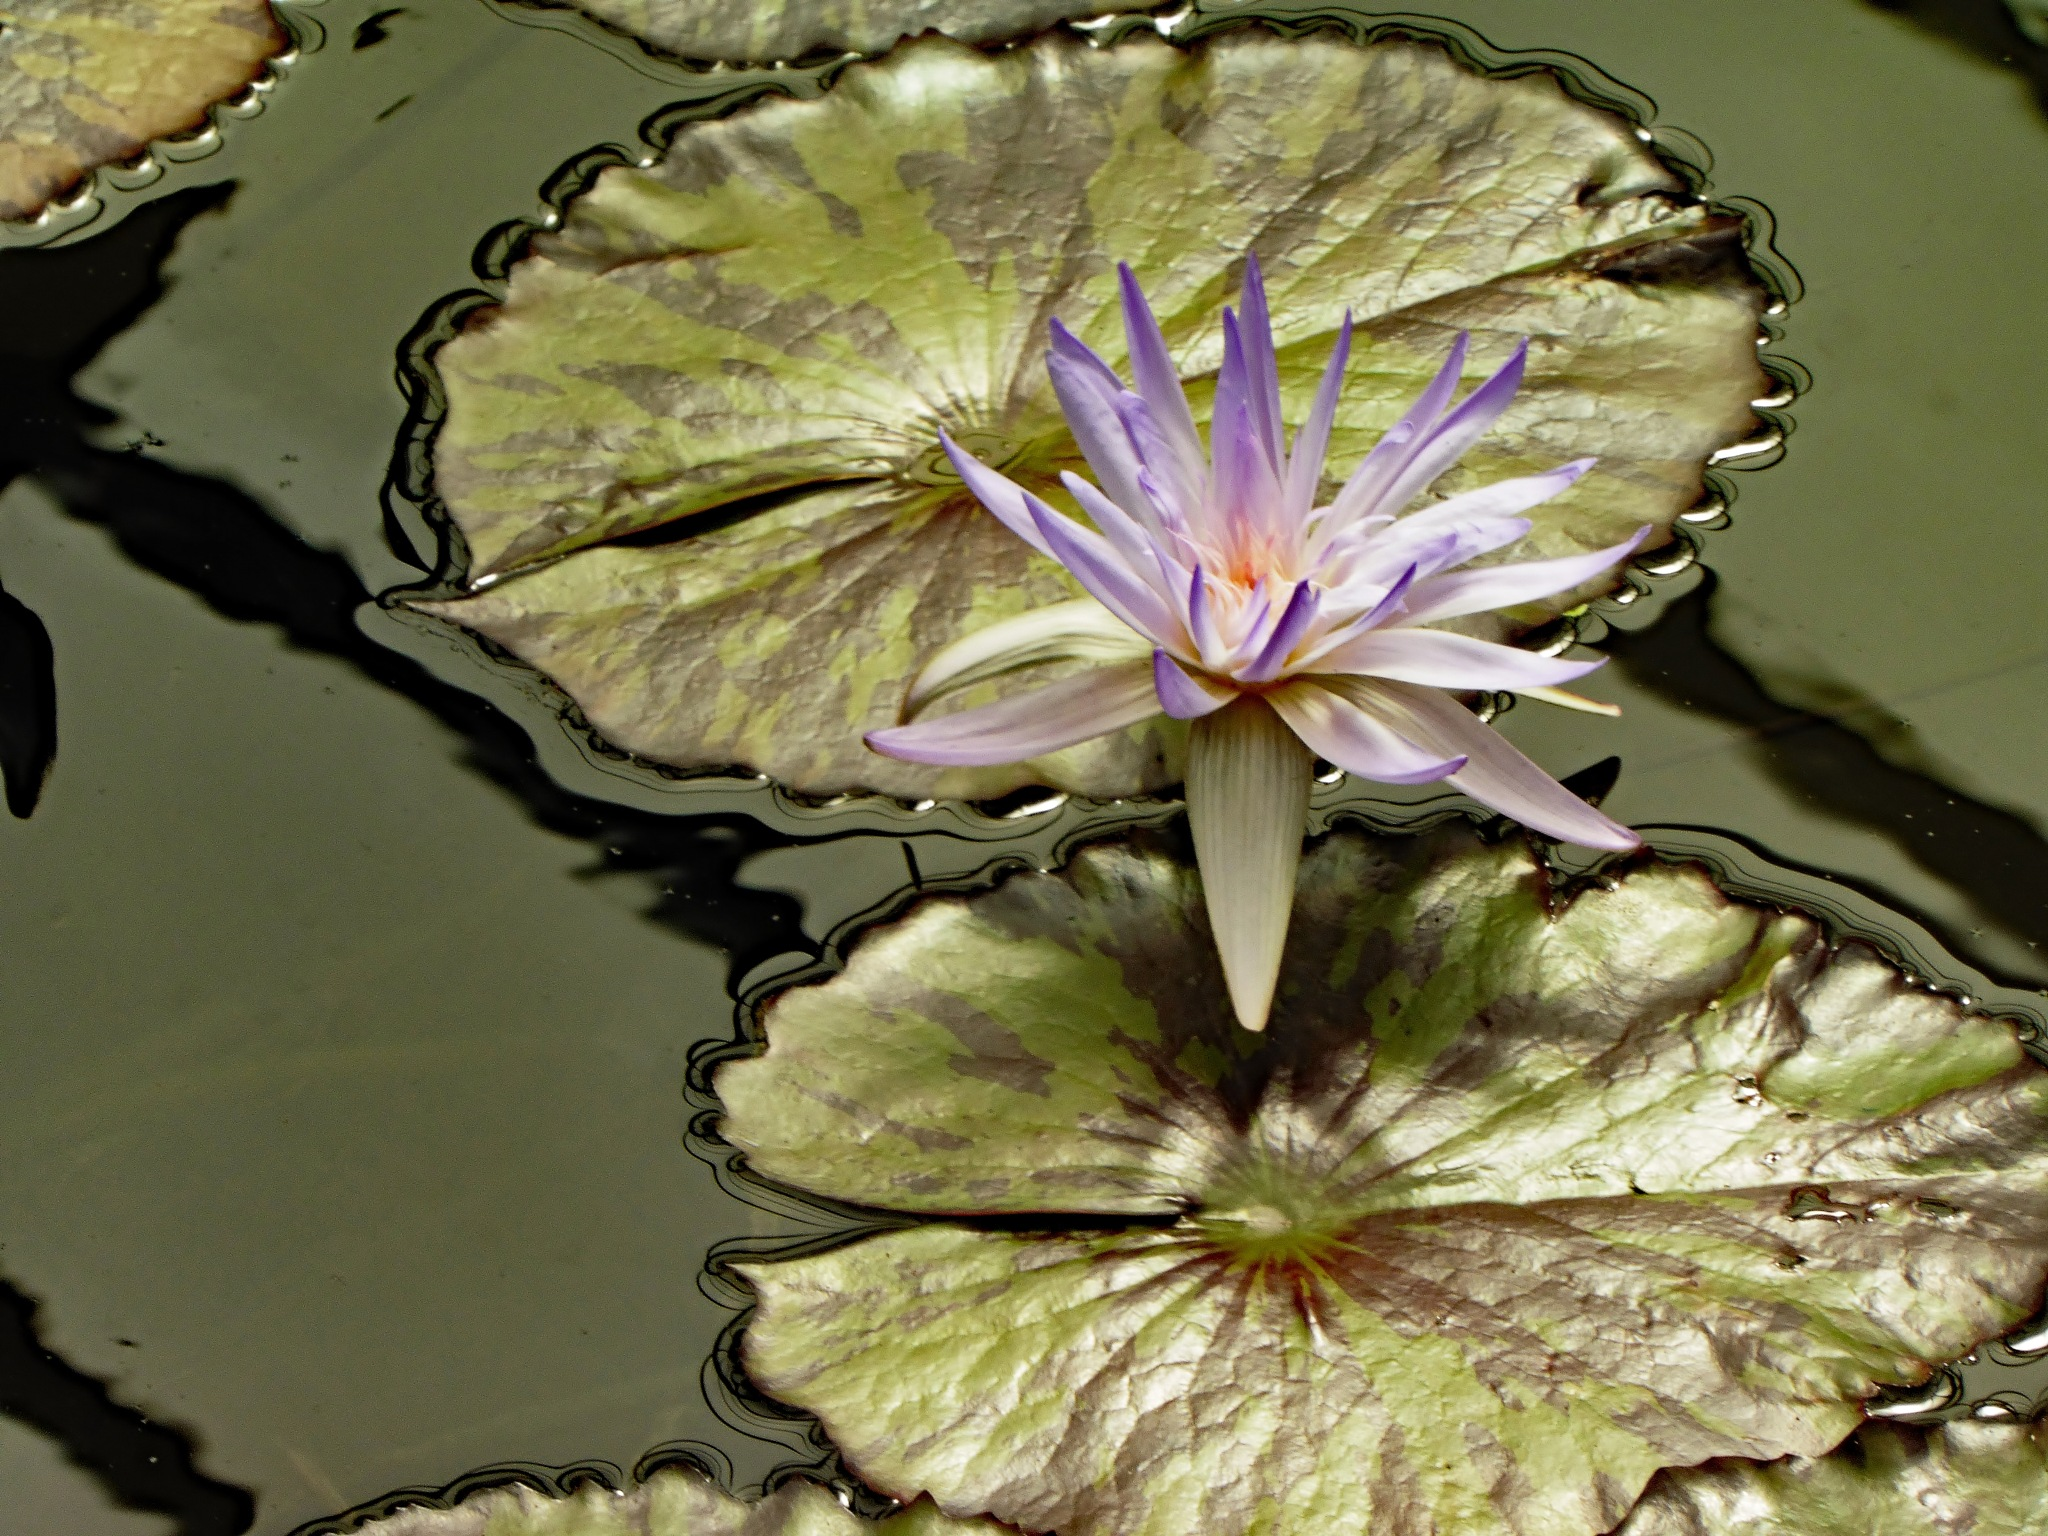 Water lily by Alan Gaines